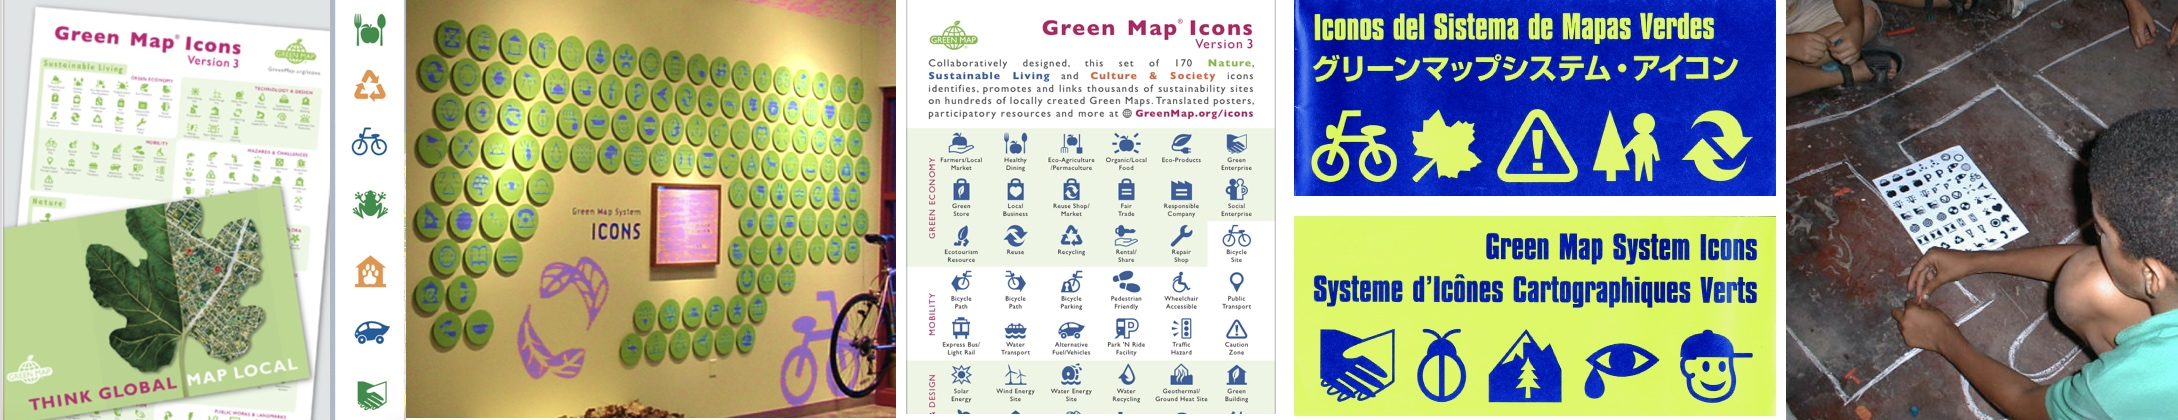 Green Map Icon posters